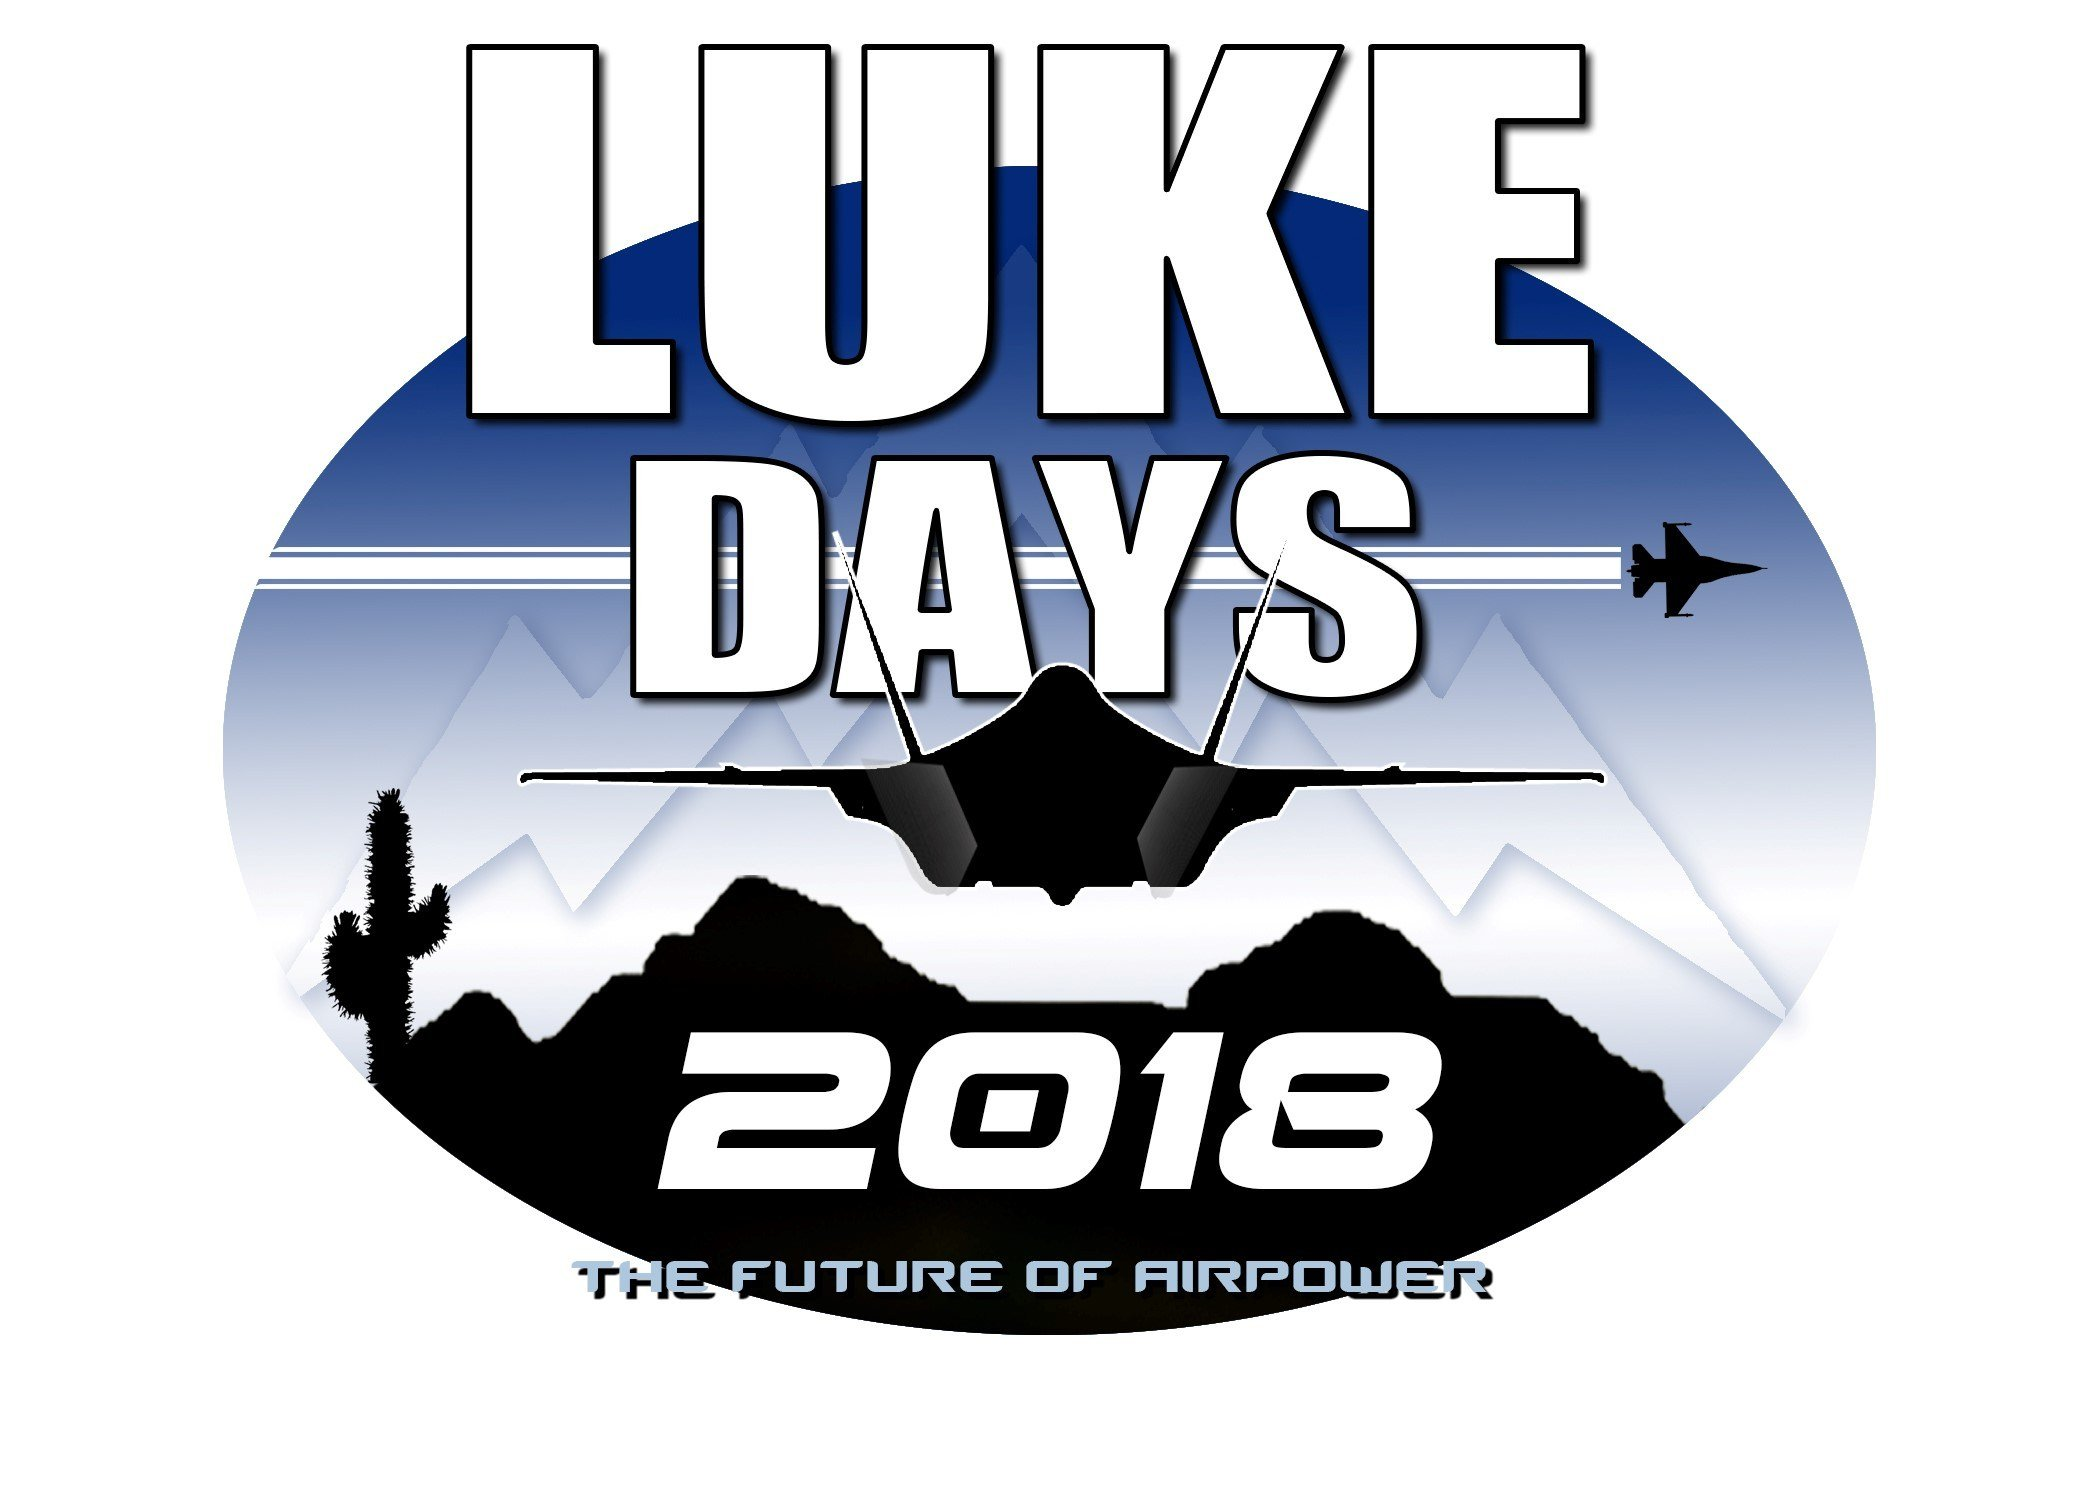 The free event will take place at Luke Air Force Base on March 17 and March 18. (Source: Luke Air Force Base)